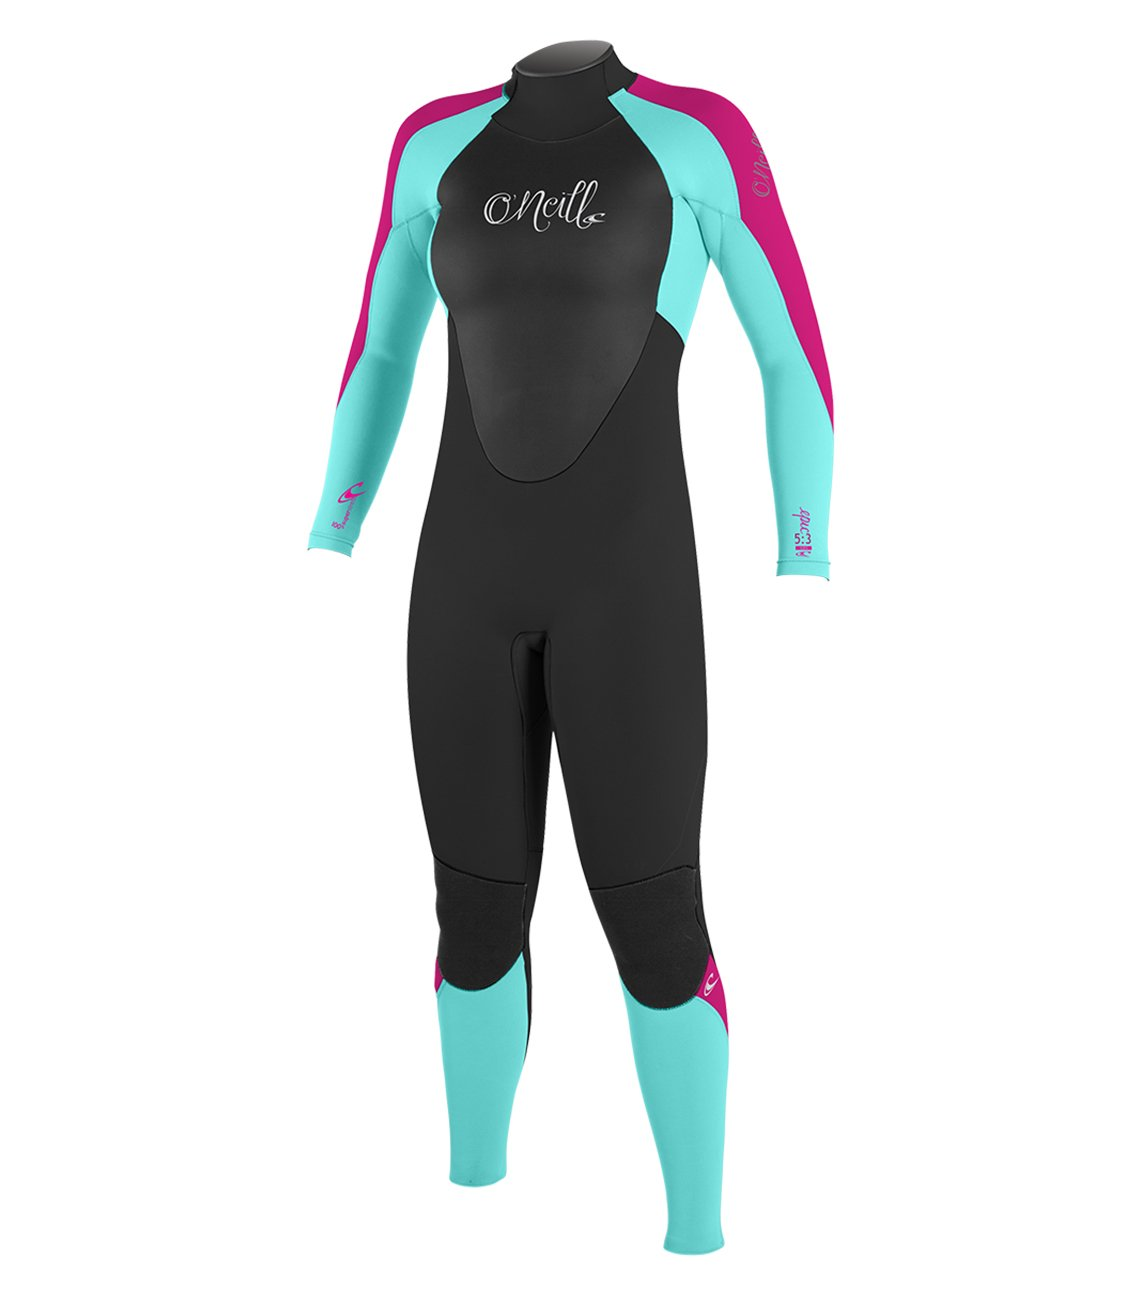 O'Neill Youth Epic 4/3mm Back Zip Full Wetsuit, Black/Sea Glass/Berry, 14 by O'Neill Wetsuits